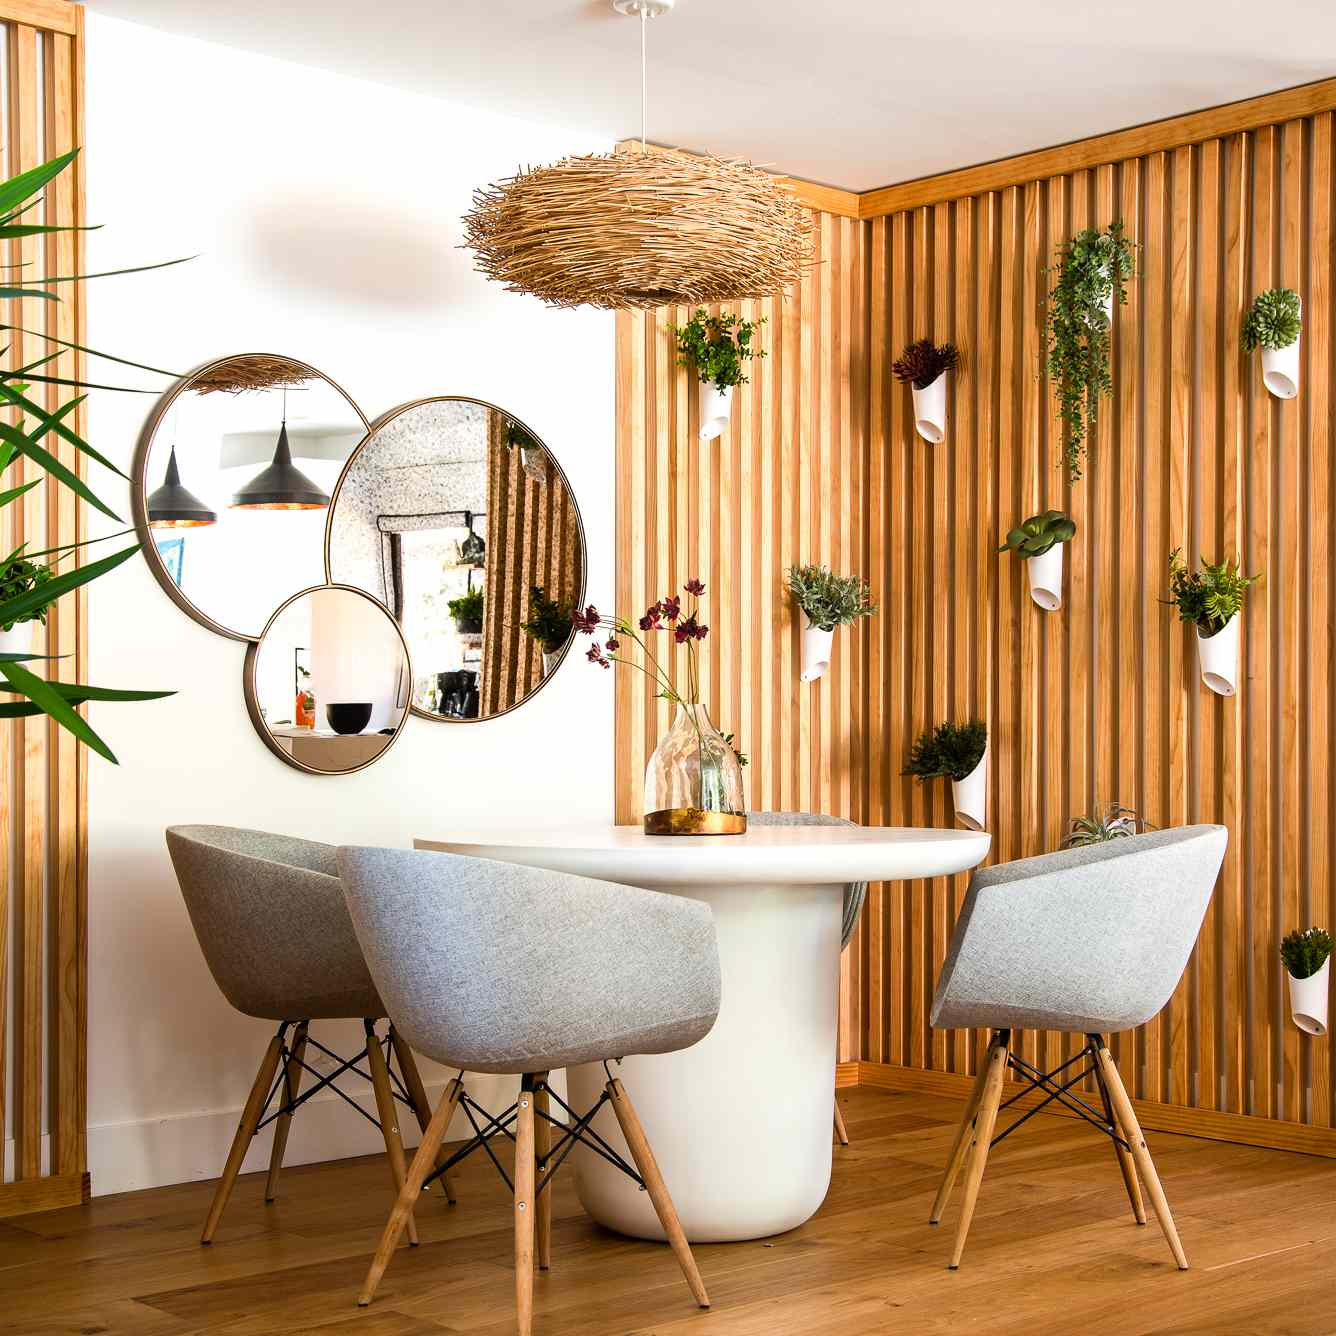 Dining nook with hanging plants and wood panelling